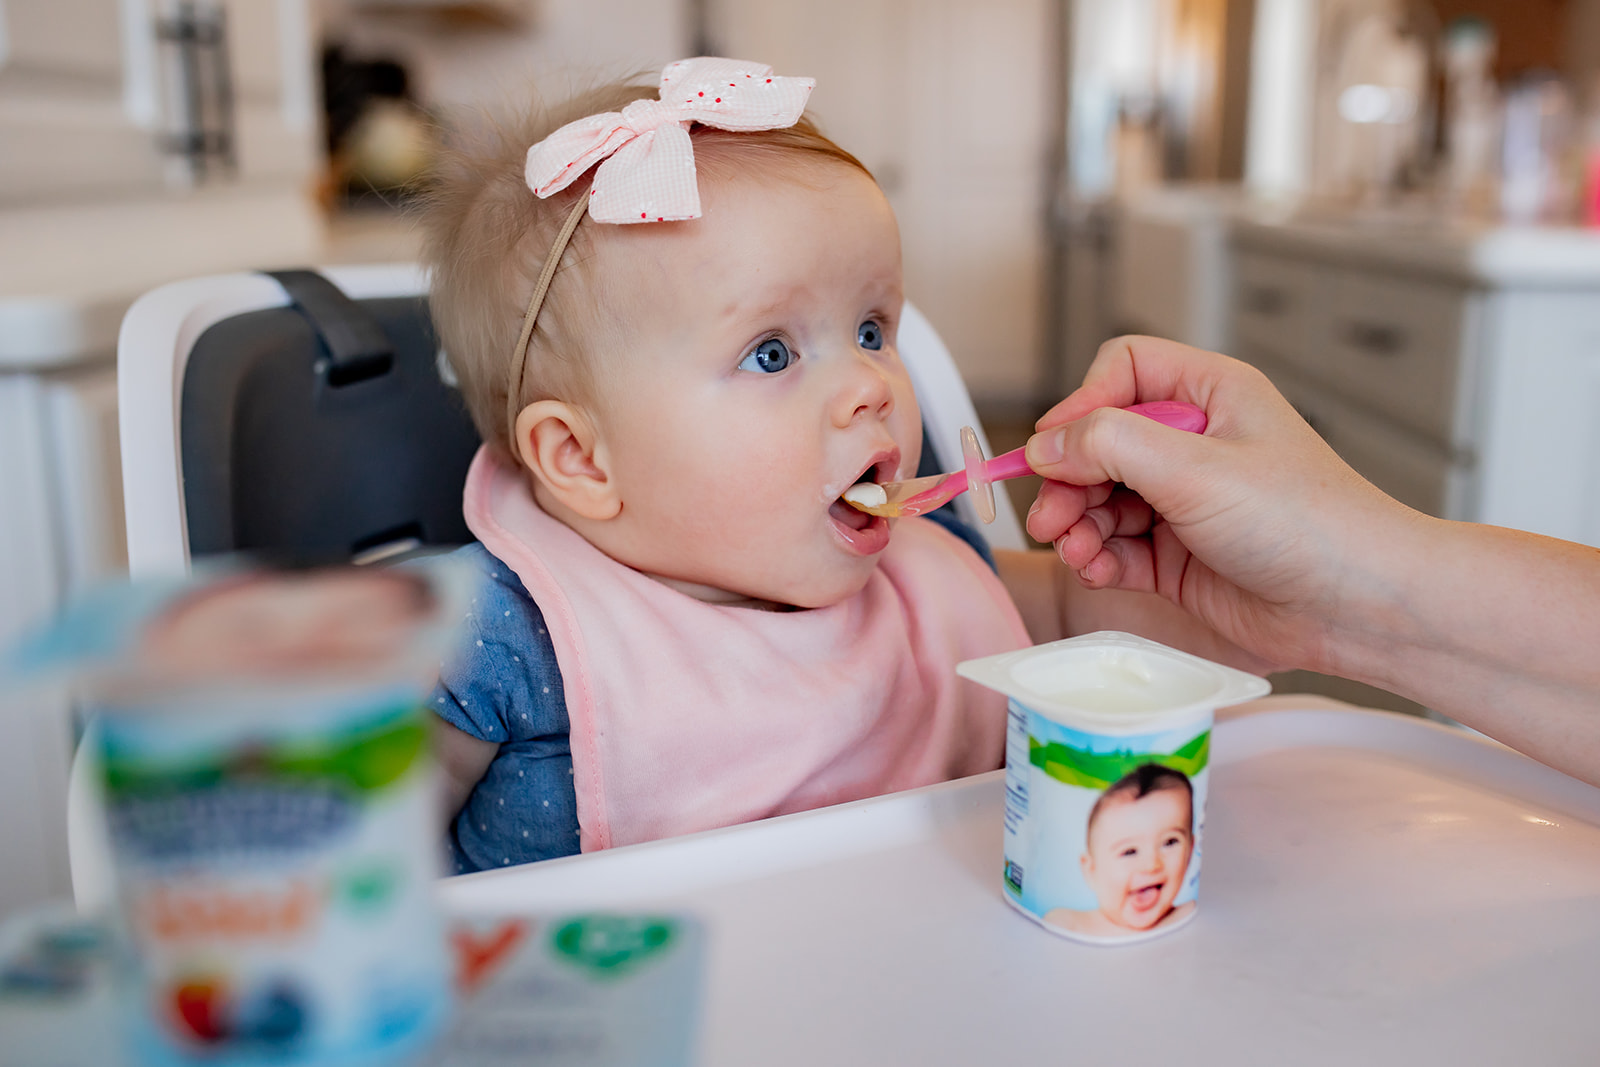 Little girl is eating yogurt with a spoon while sitting on her high chair.